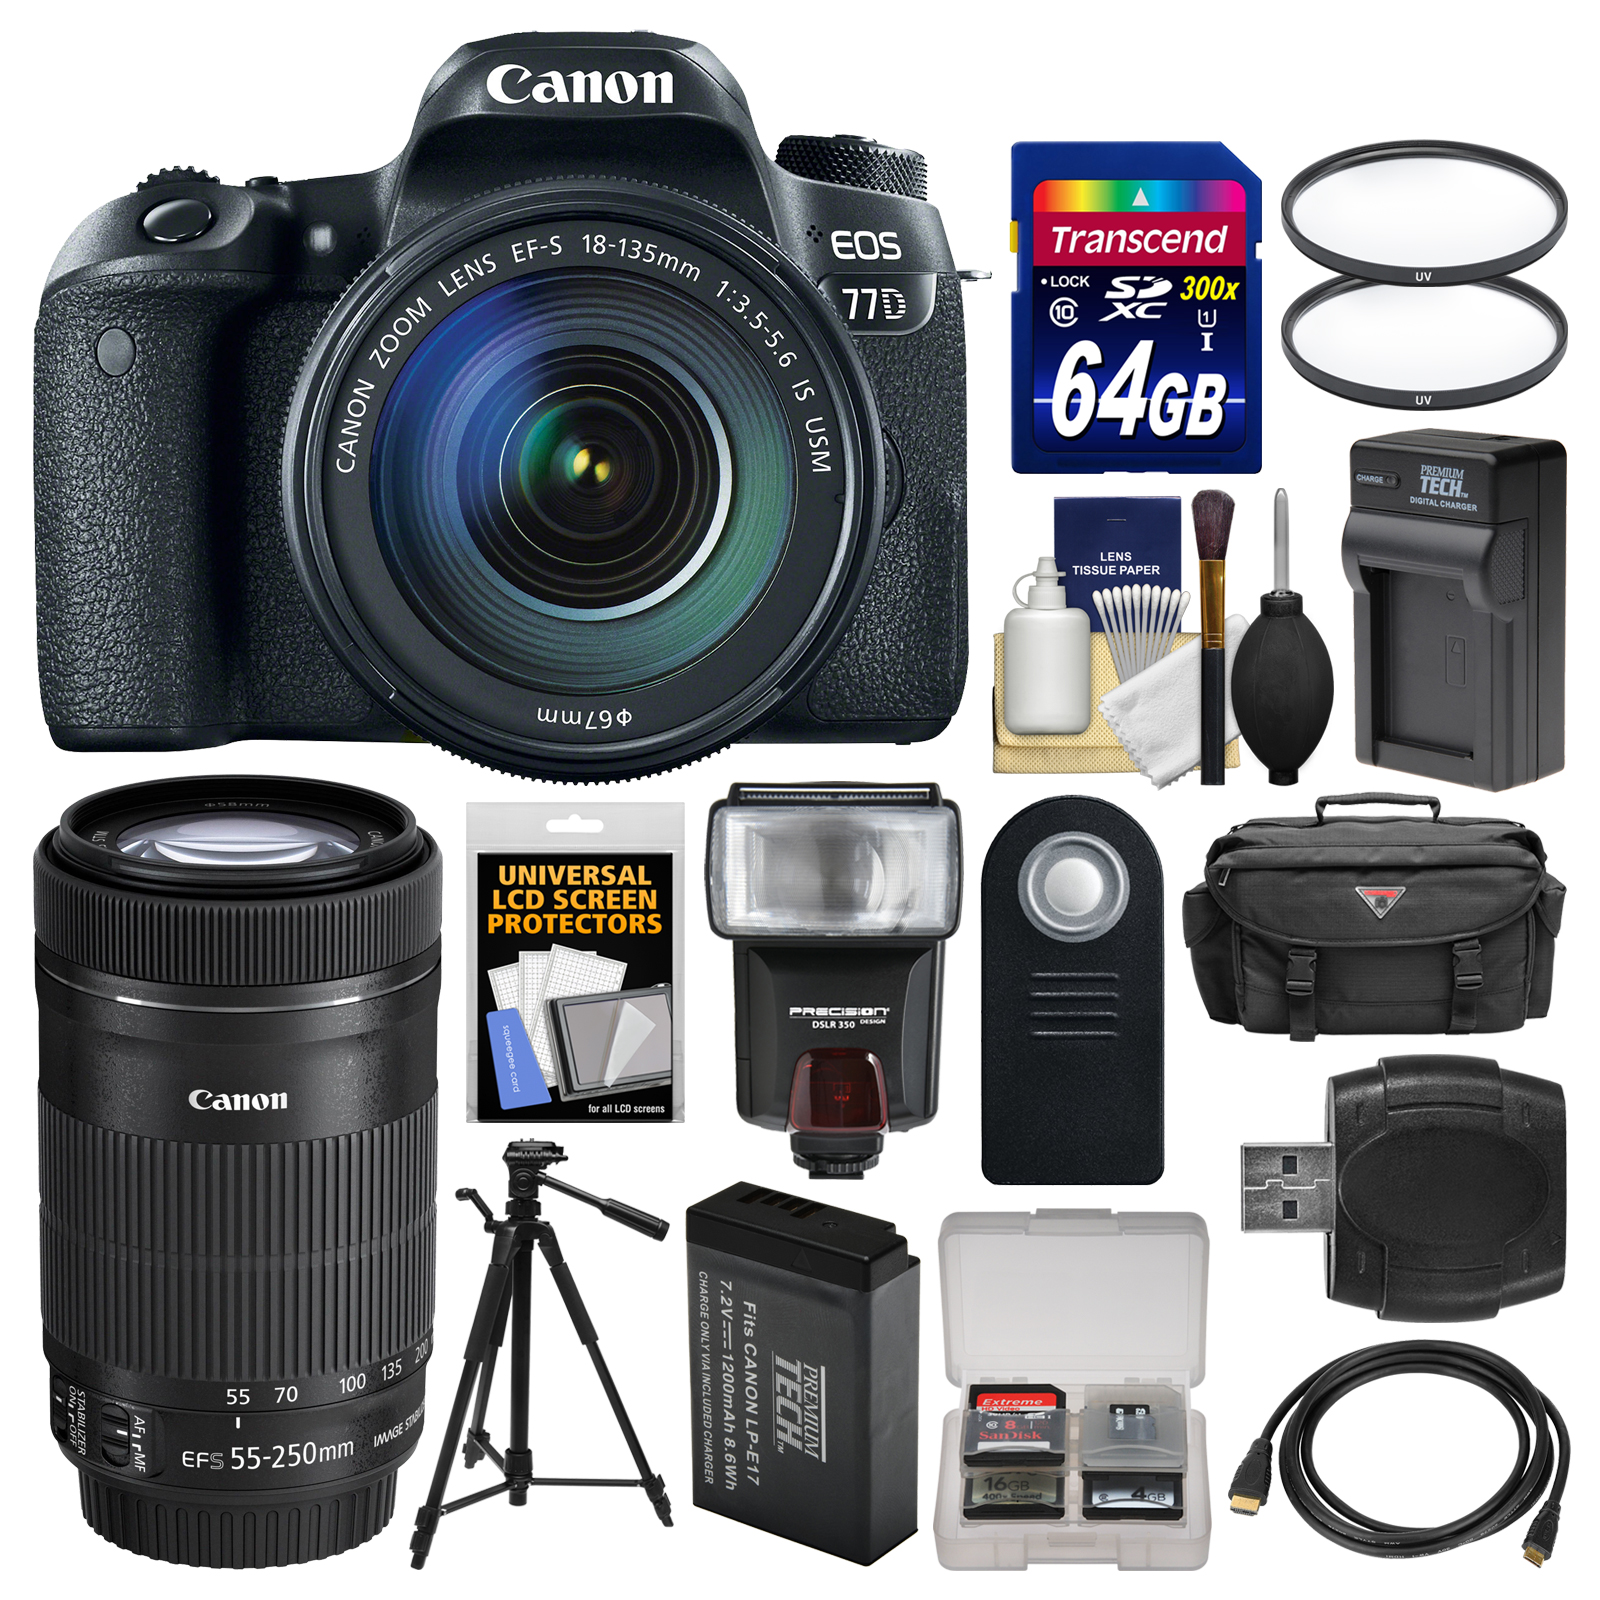 Canon EOS 77D Wi-Fi Digital SLR Camera & EF-S 18-135mm IS USM with 55-250mm Lens + 64GB Card + Case + Flash +... by Canon